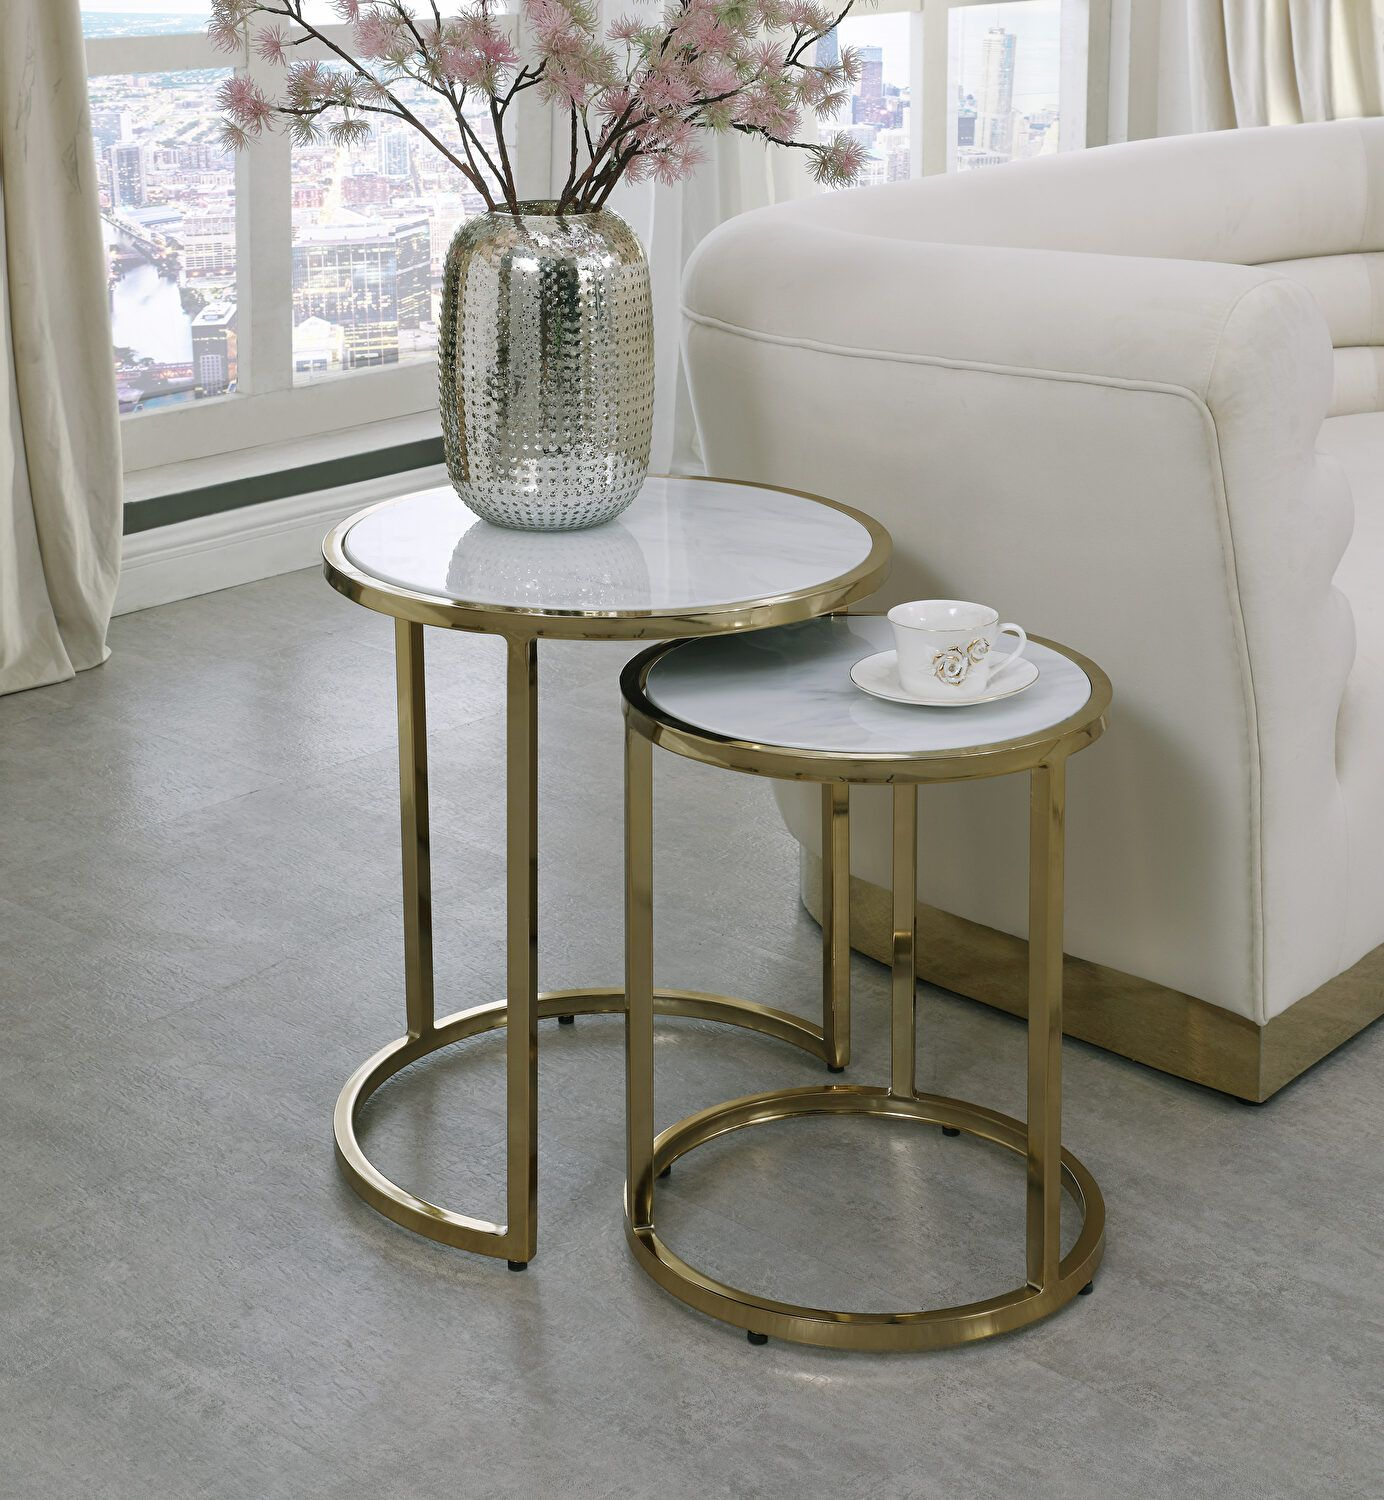 Massimo Et End Table 207 Meridian Furniture End Accent Tables In 2021 Nesting Tables Table Decor Living Room End Tables [ 1500 x 1384 Pixel ]